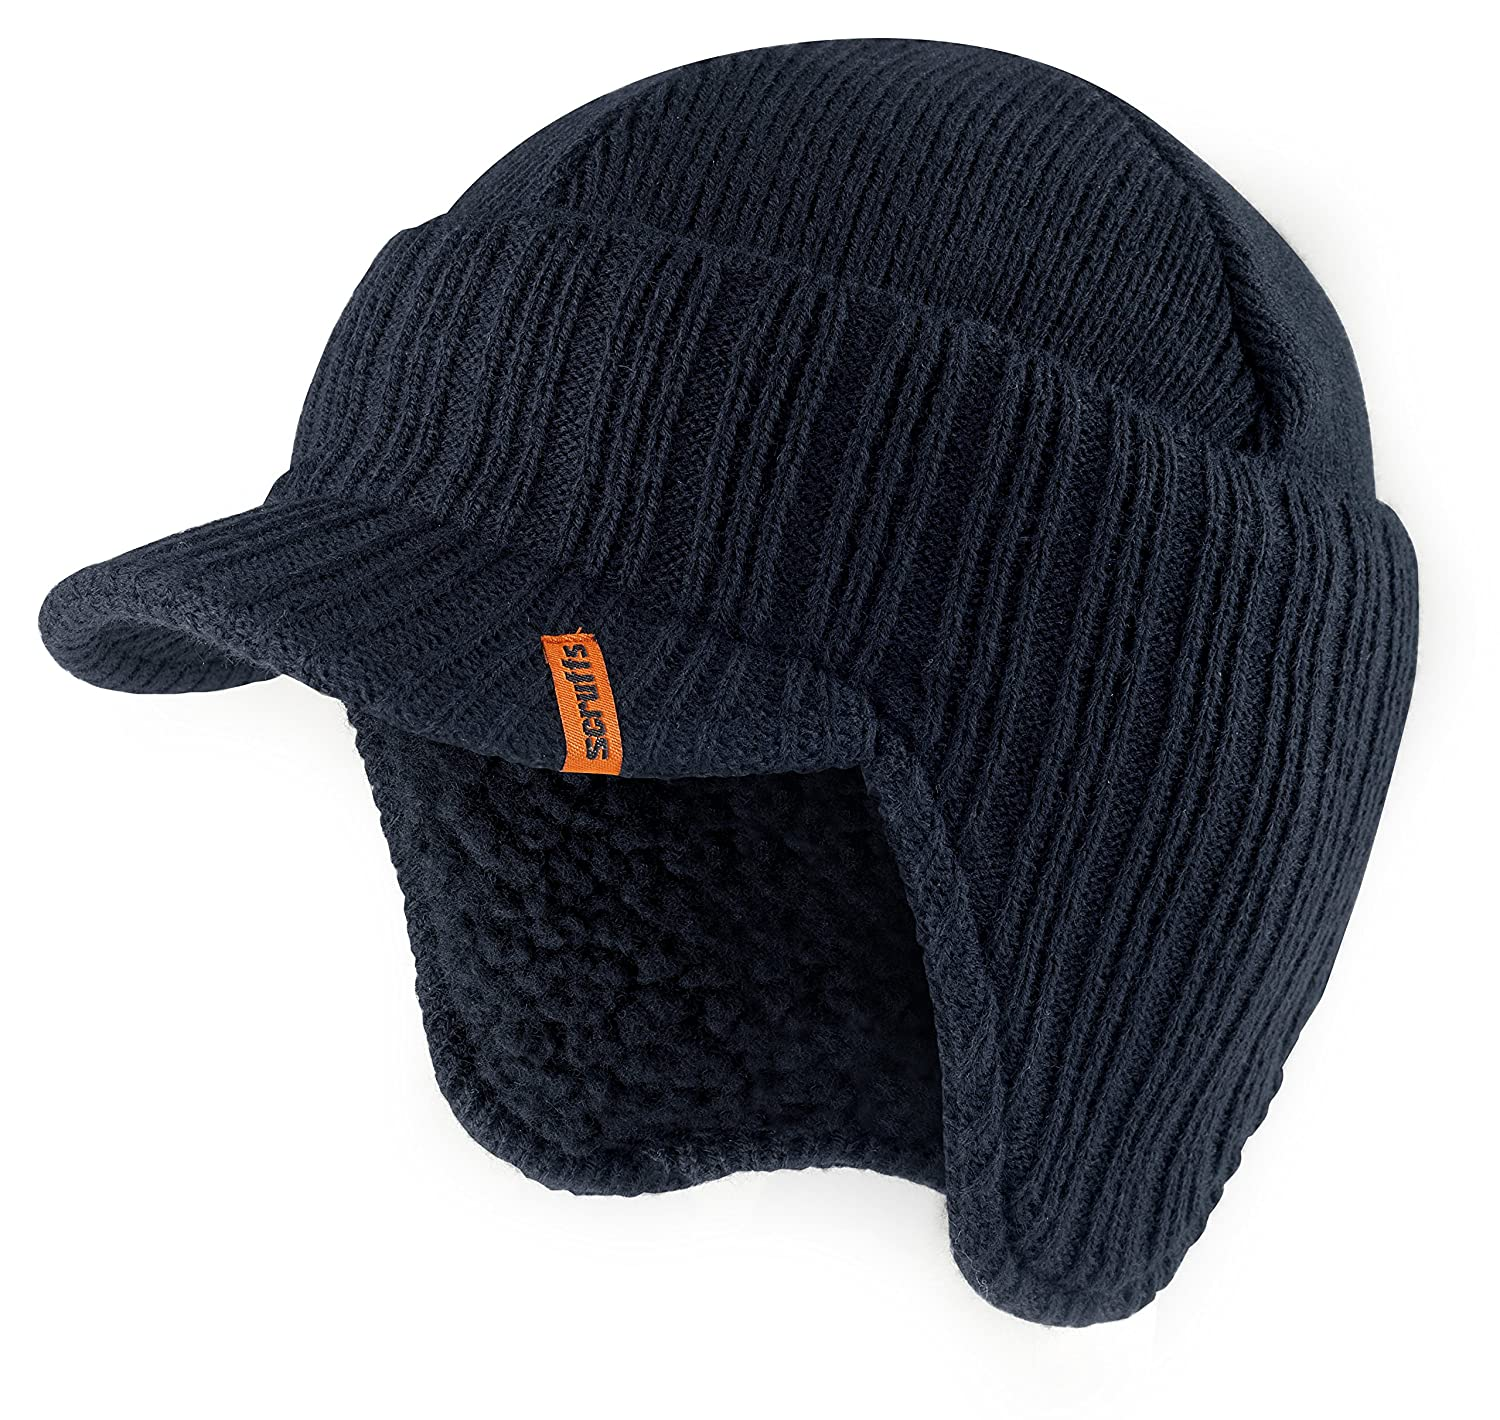 Scruffs Peaked Beanie Hat Navy Insulated Warm Knitted Thermal Winter  Stylish Peak Cap  Amazon.co.uk  Clothing 800102730de